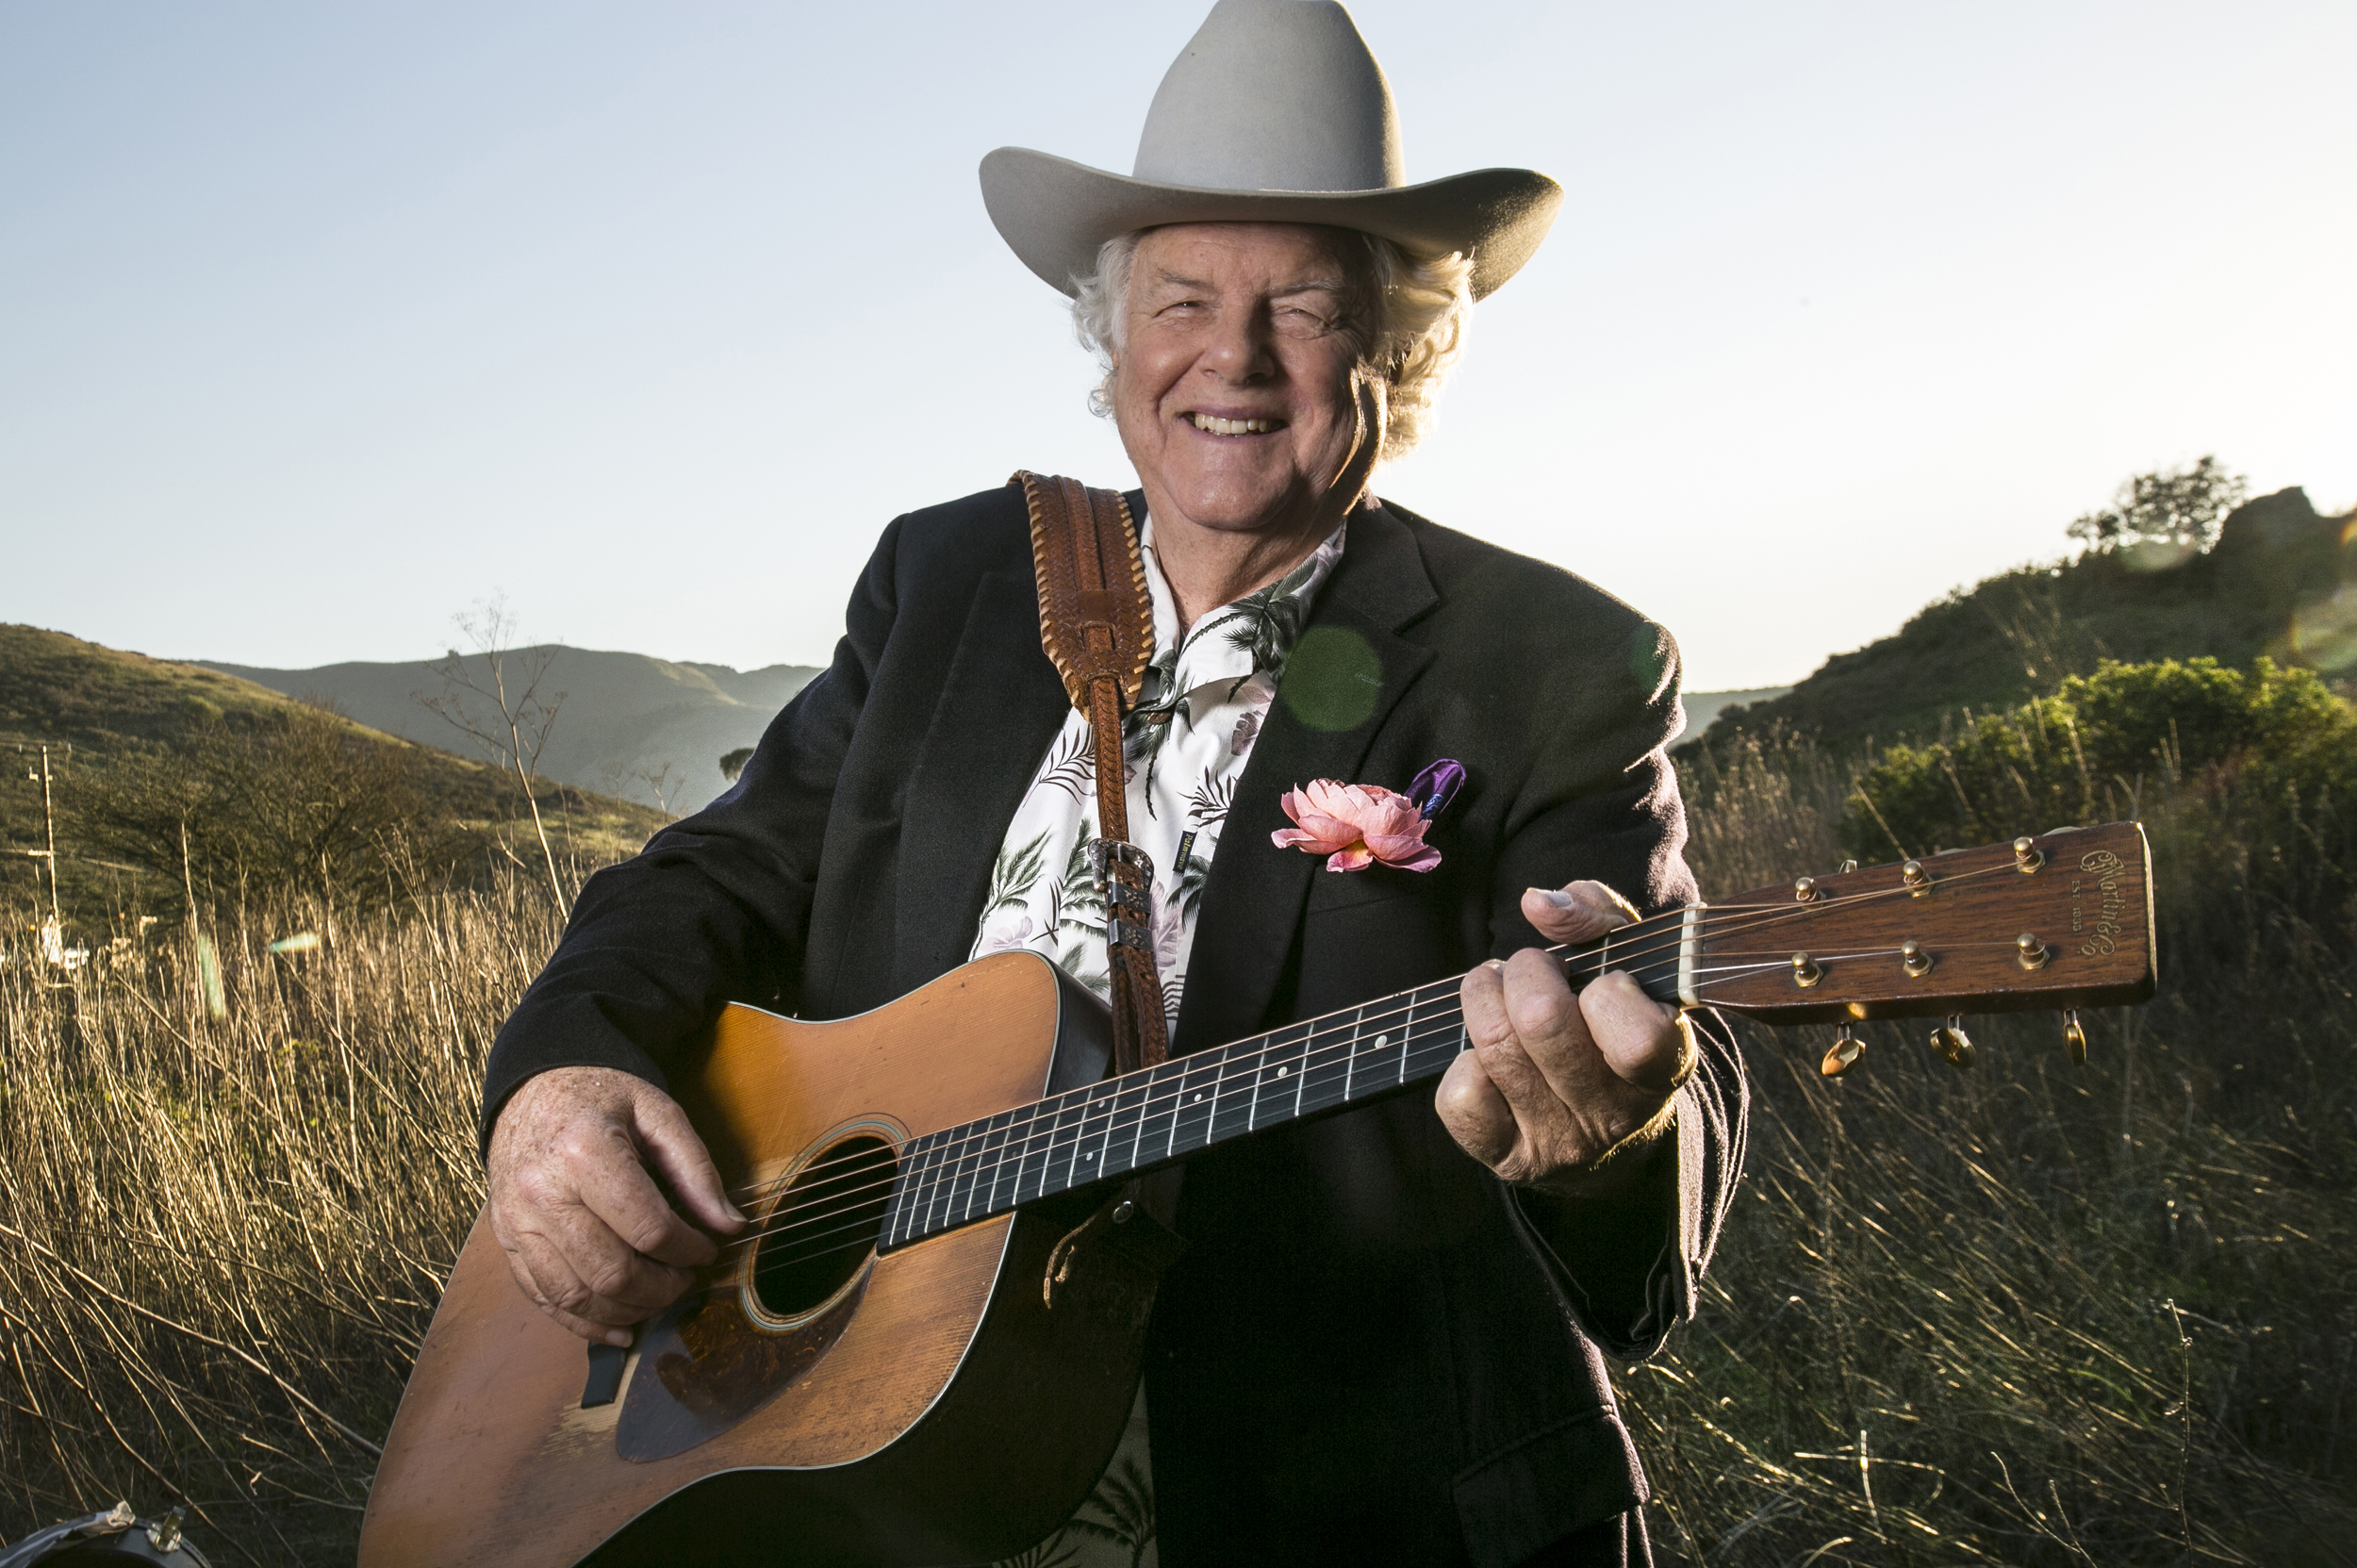 Defying Expectations: A Conversation with Peter Rowan